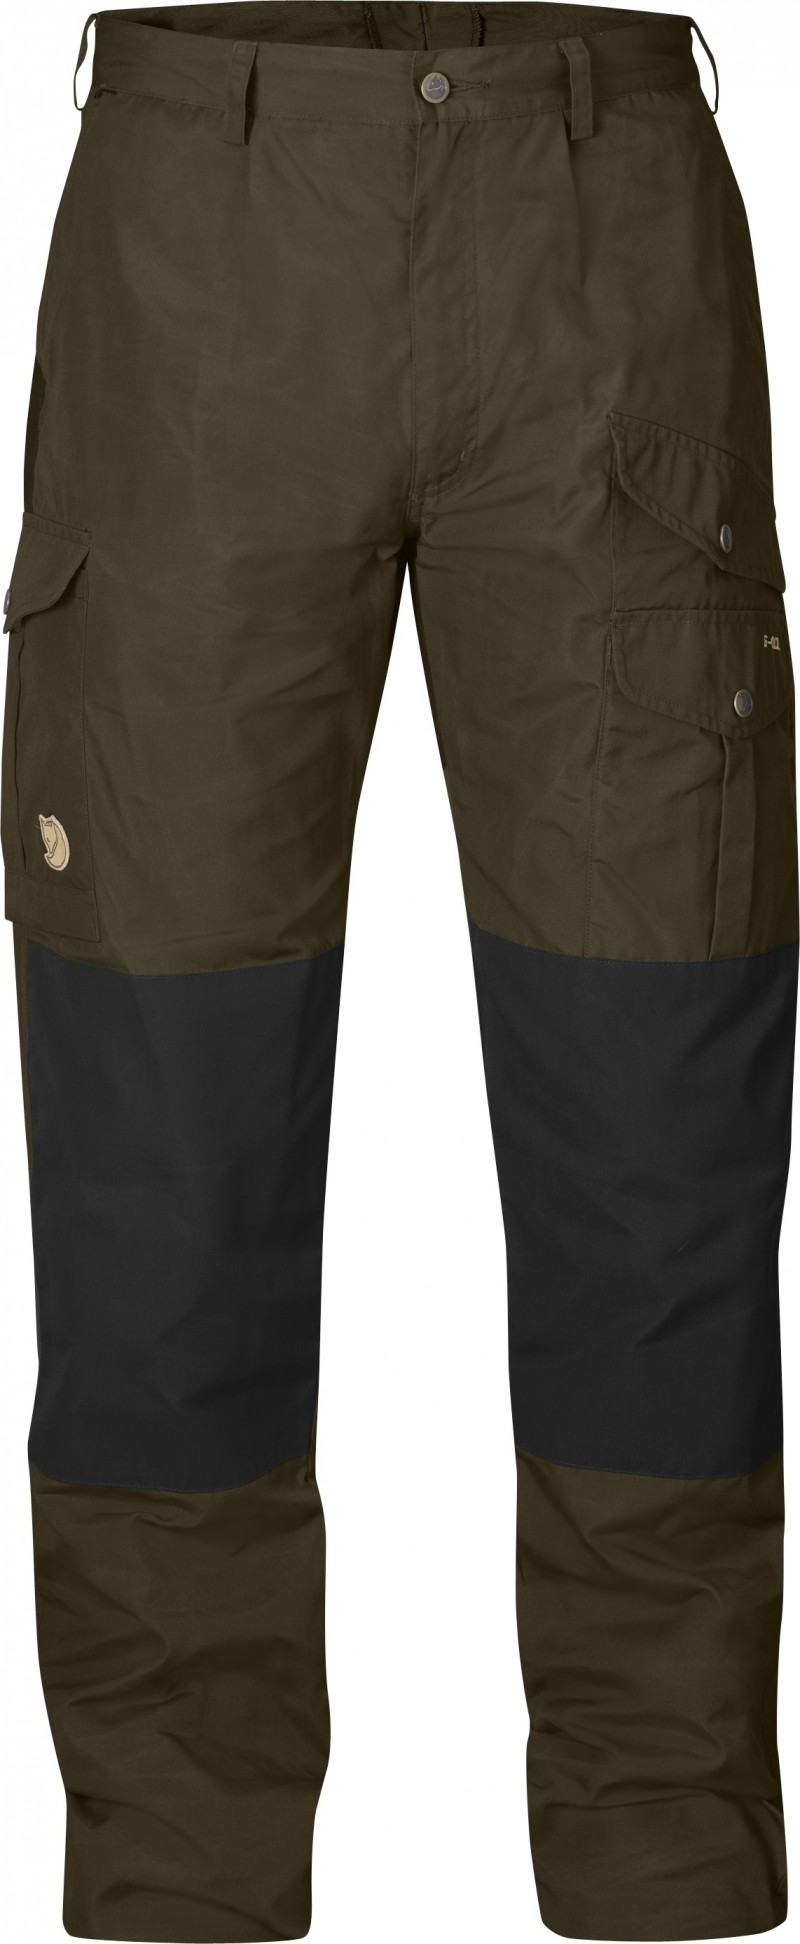 FjallRaven Barents Trousers Tarmac-30